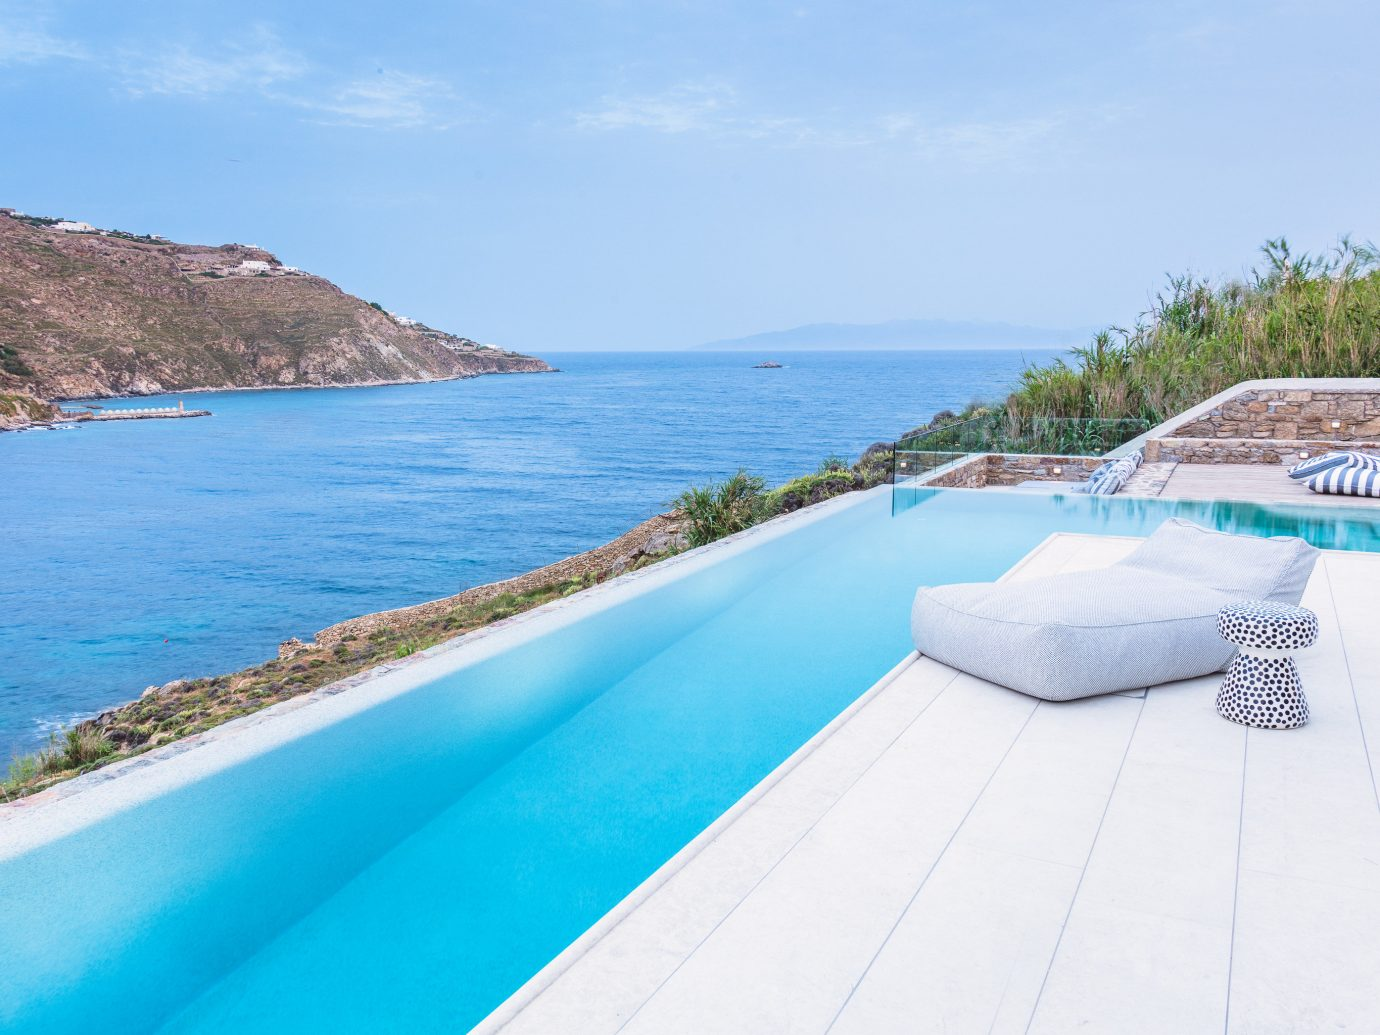 Hotels Luxury Travel sky water outdoor Nature swimming pool Beach property Sea Resort mountain leisure vacation coastal and oceanic landforms tourism bay real estate shore caribbean estate Villa amenity swimming sandy